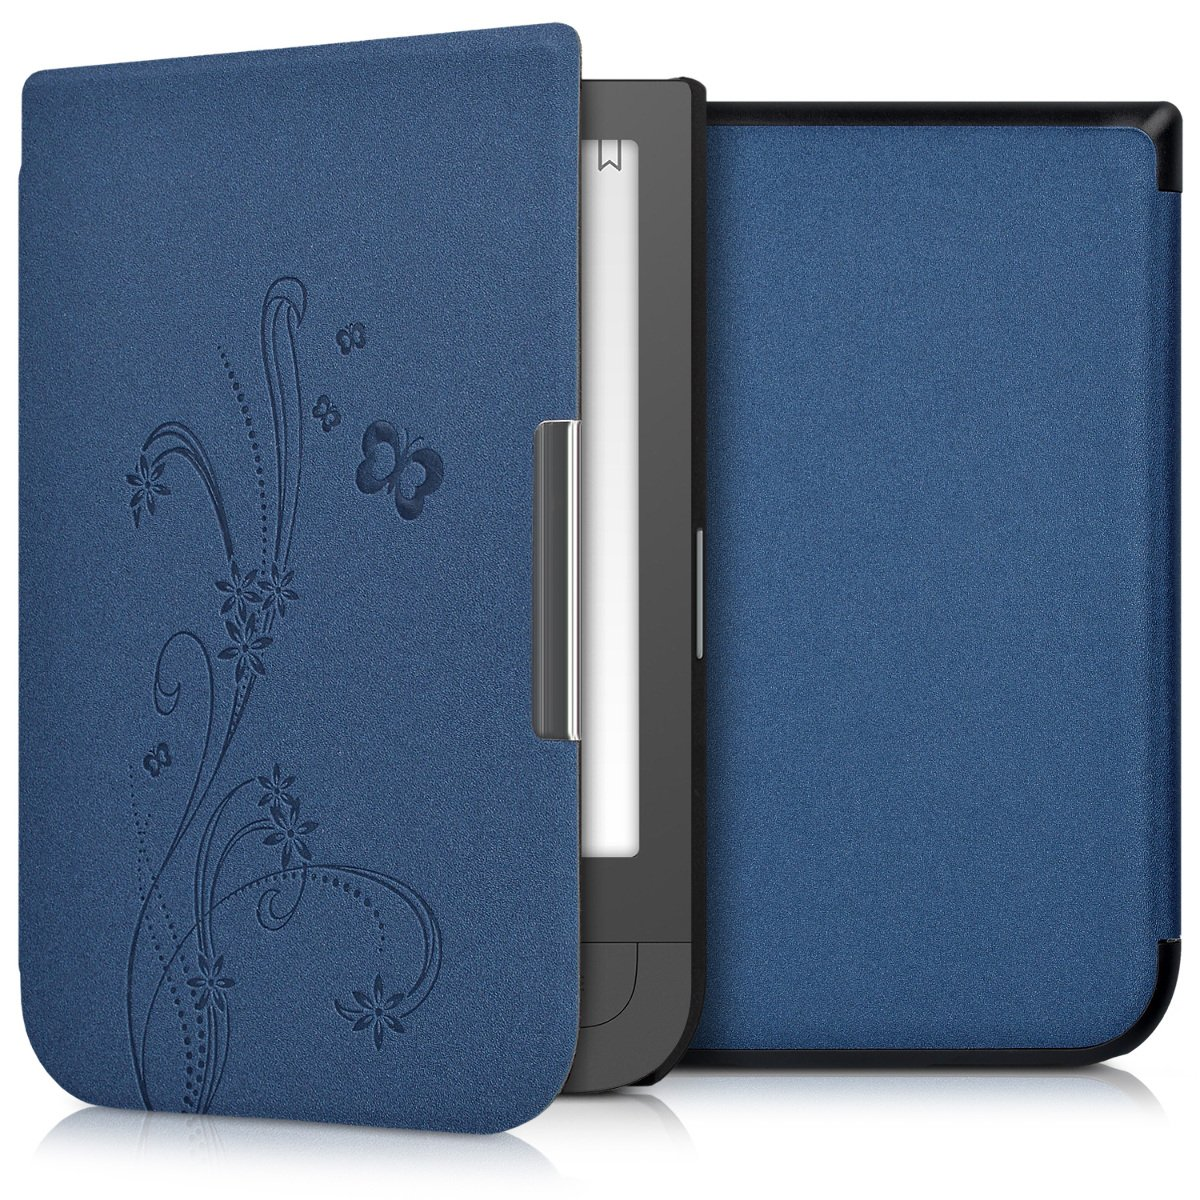 kwmobile Elegant synthetic leather case for the Pocketbook Touch HD/Touch HD 2 Butterfly Tendril in dark blue